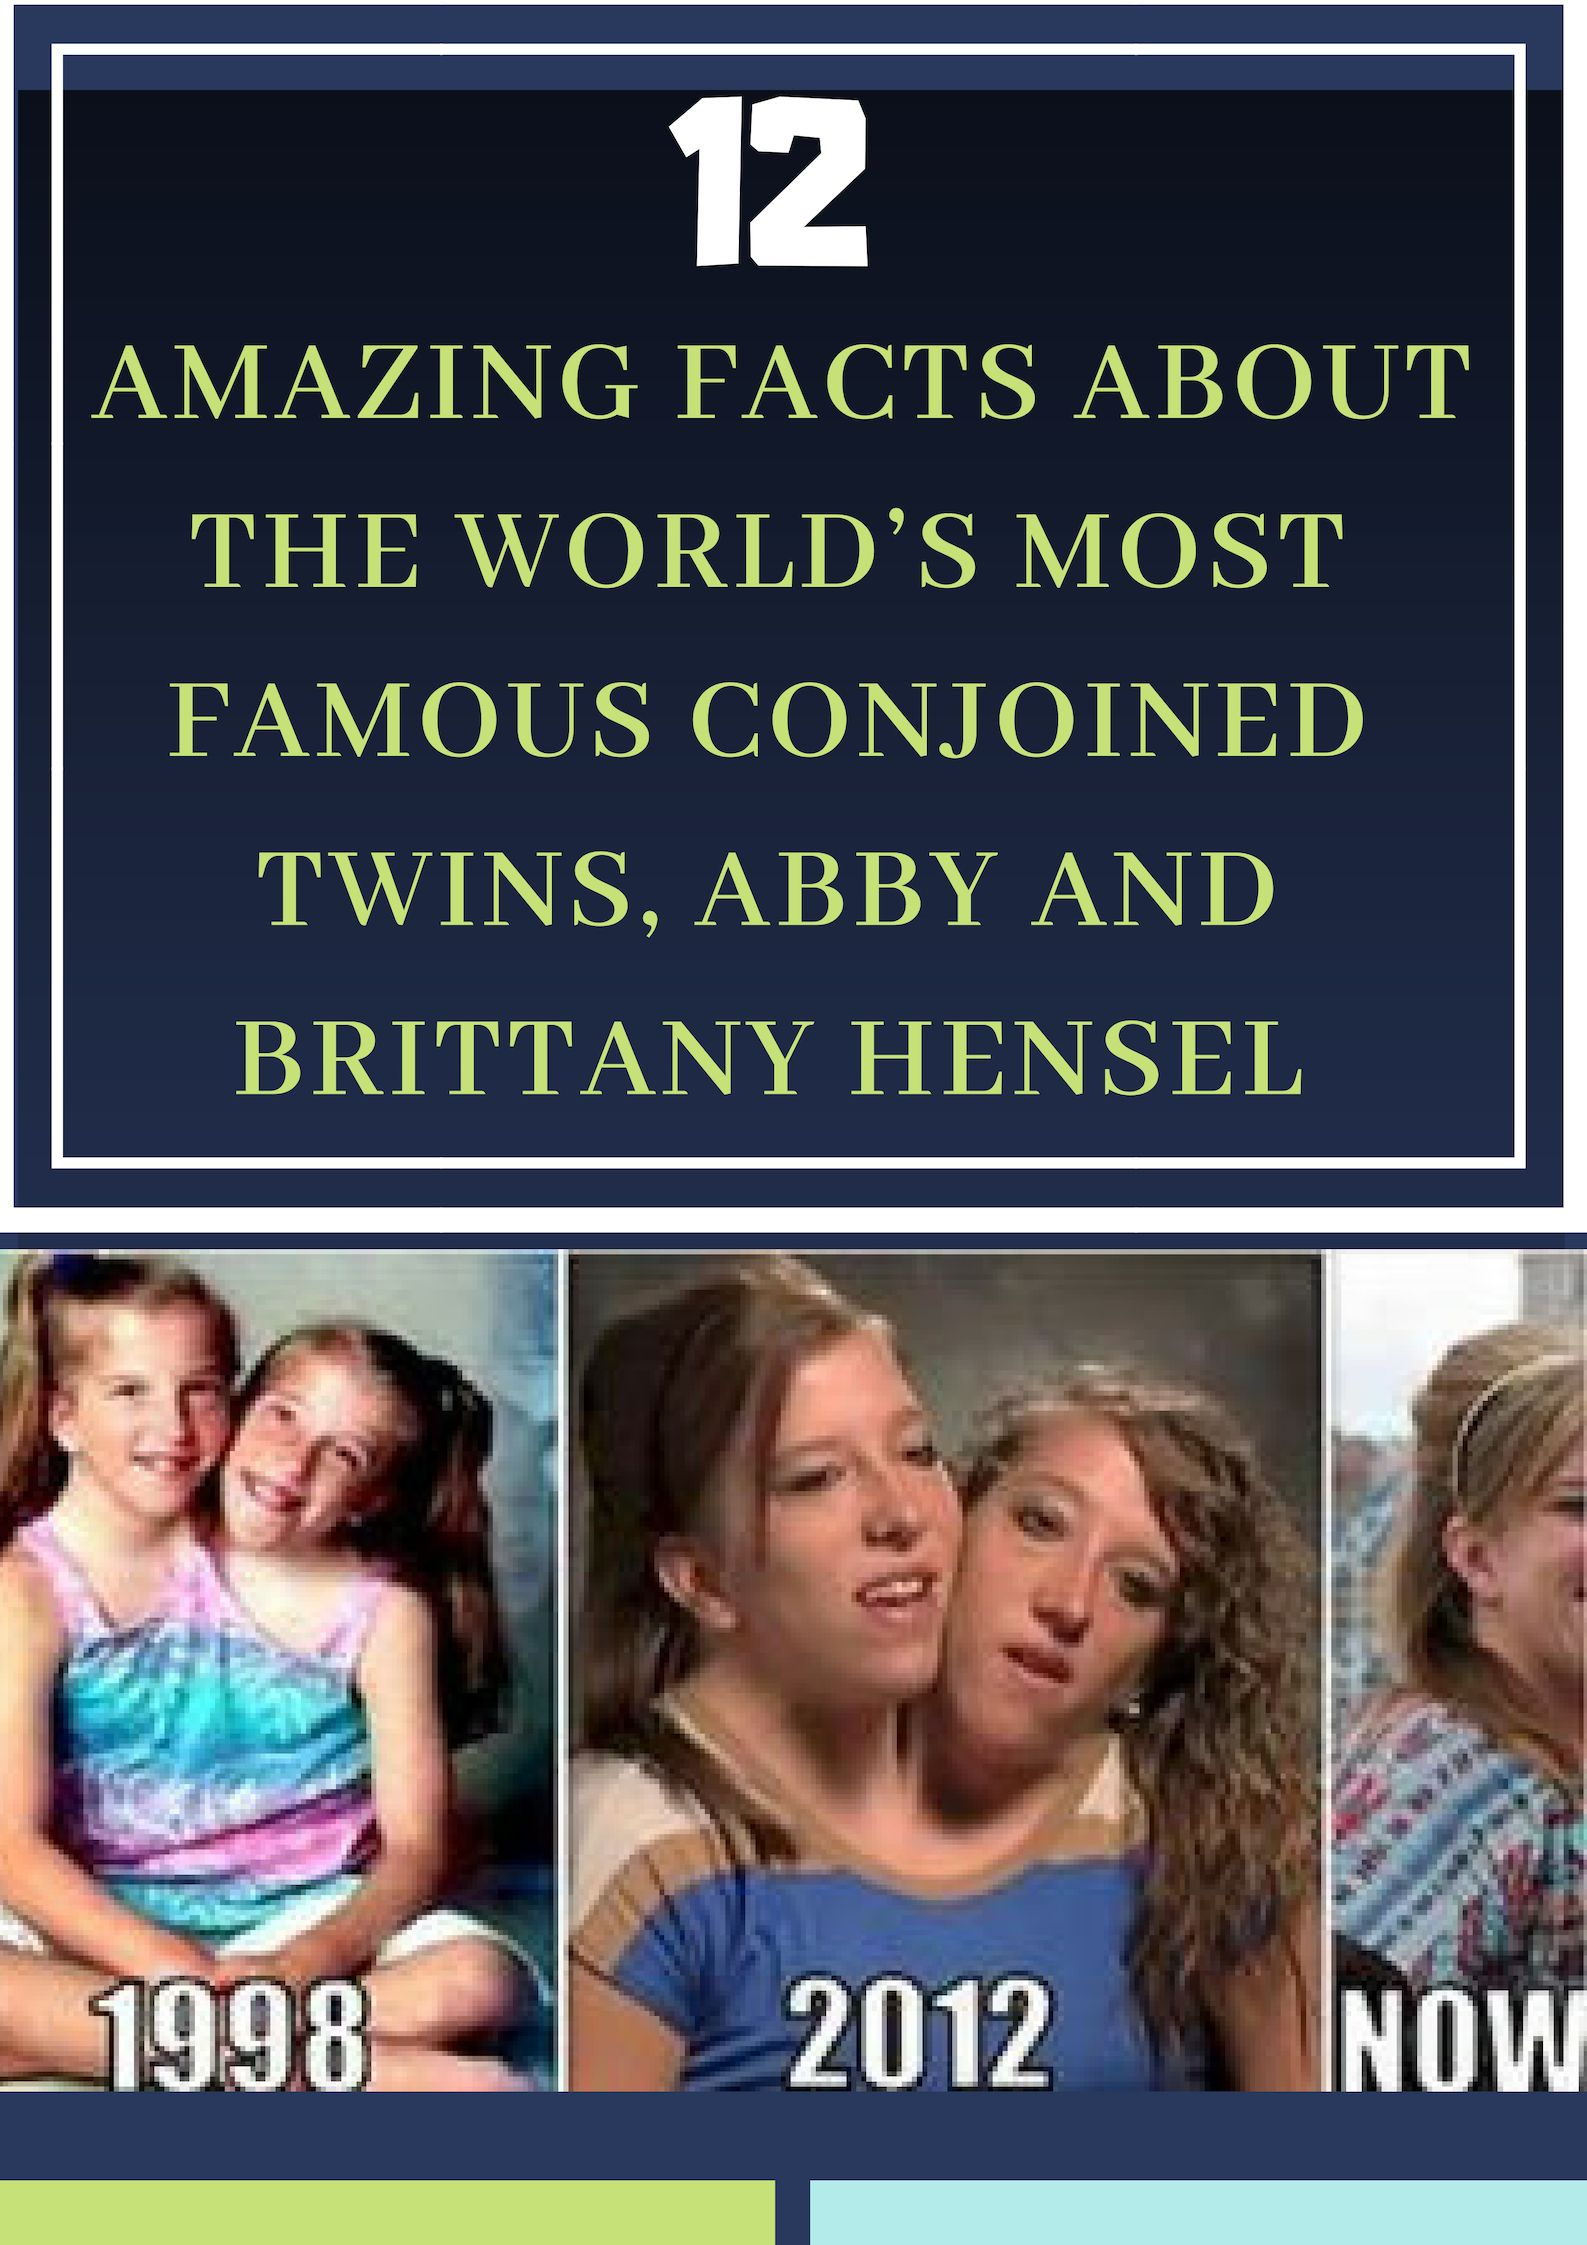 12 Amazing Facts About The World S Most Famous Conjoined Twins Abby And Brittany Hensel Wtf Fun Facts Fun Facts Wtf Funny